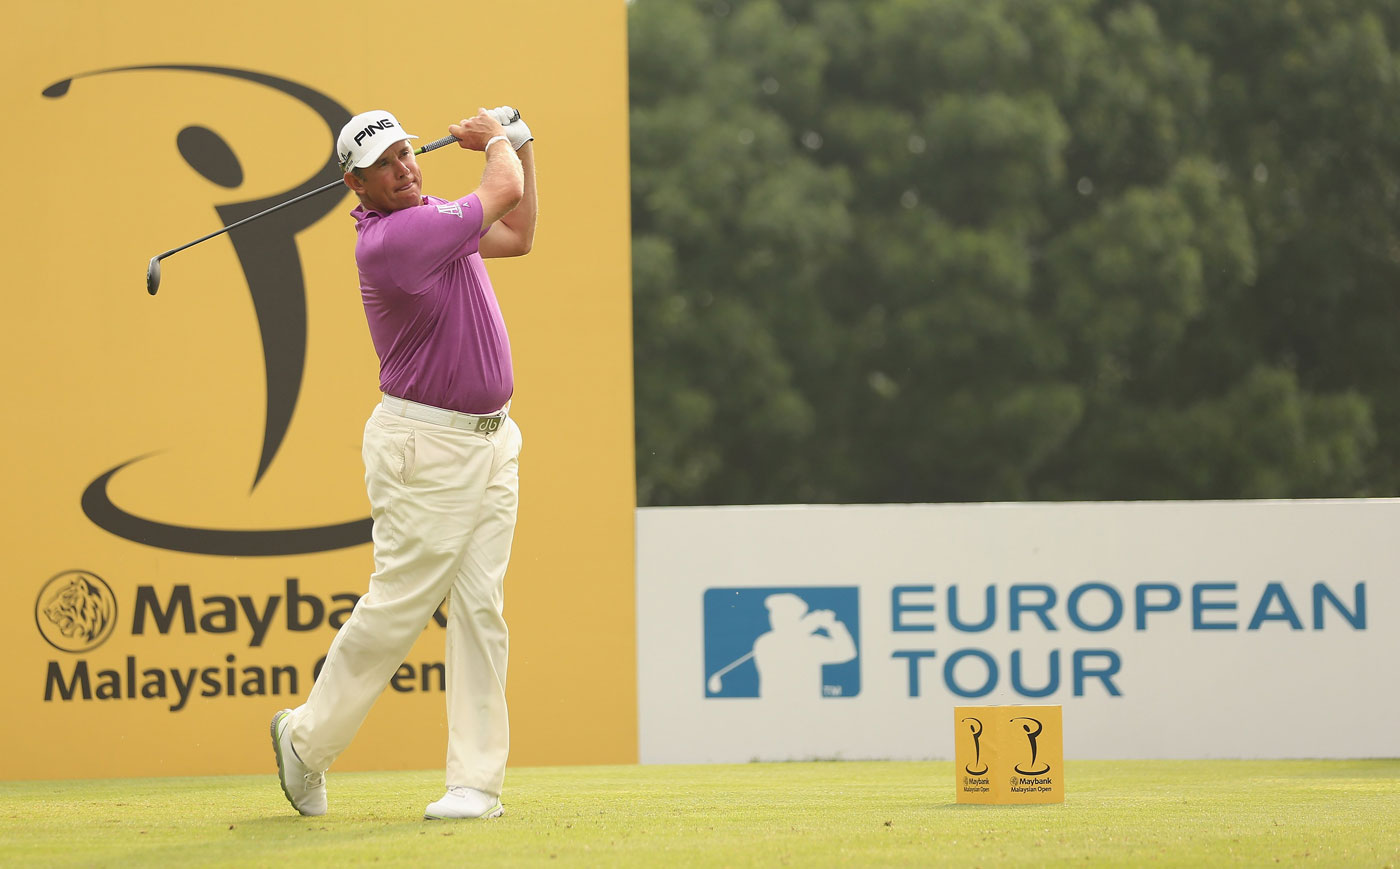 Lee Westwood is the defending champion at the Maybank Malaysian Open.